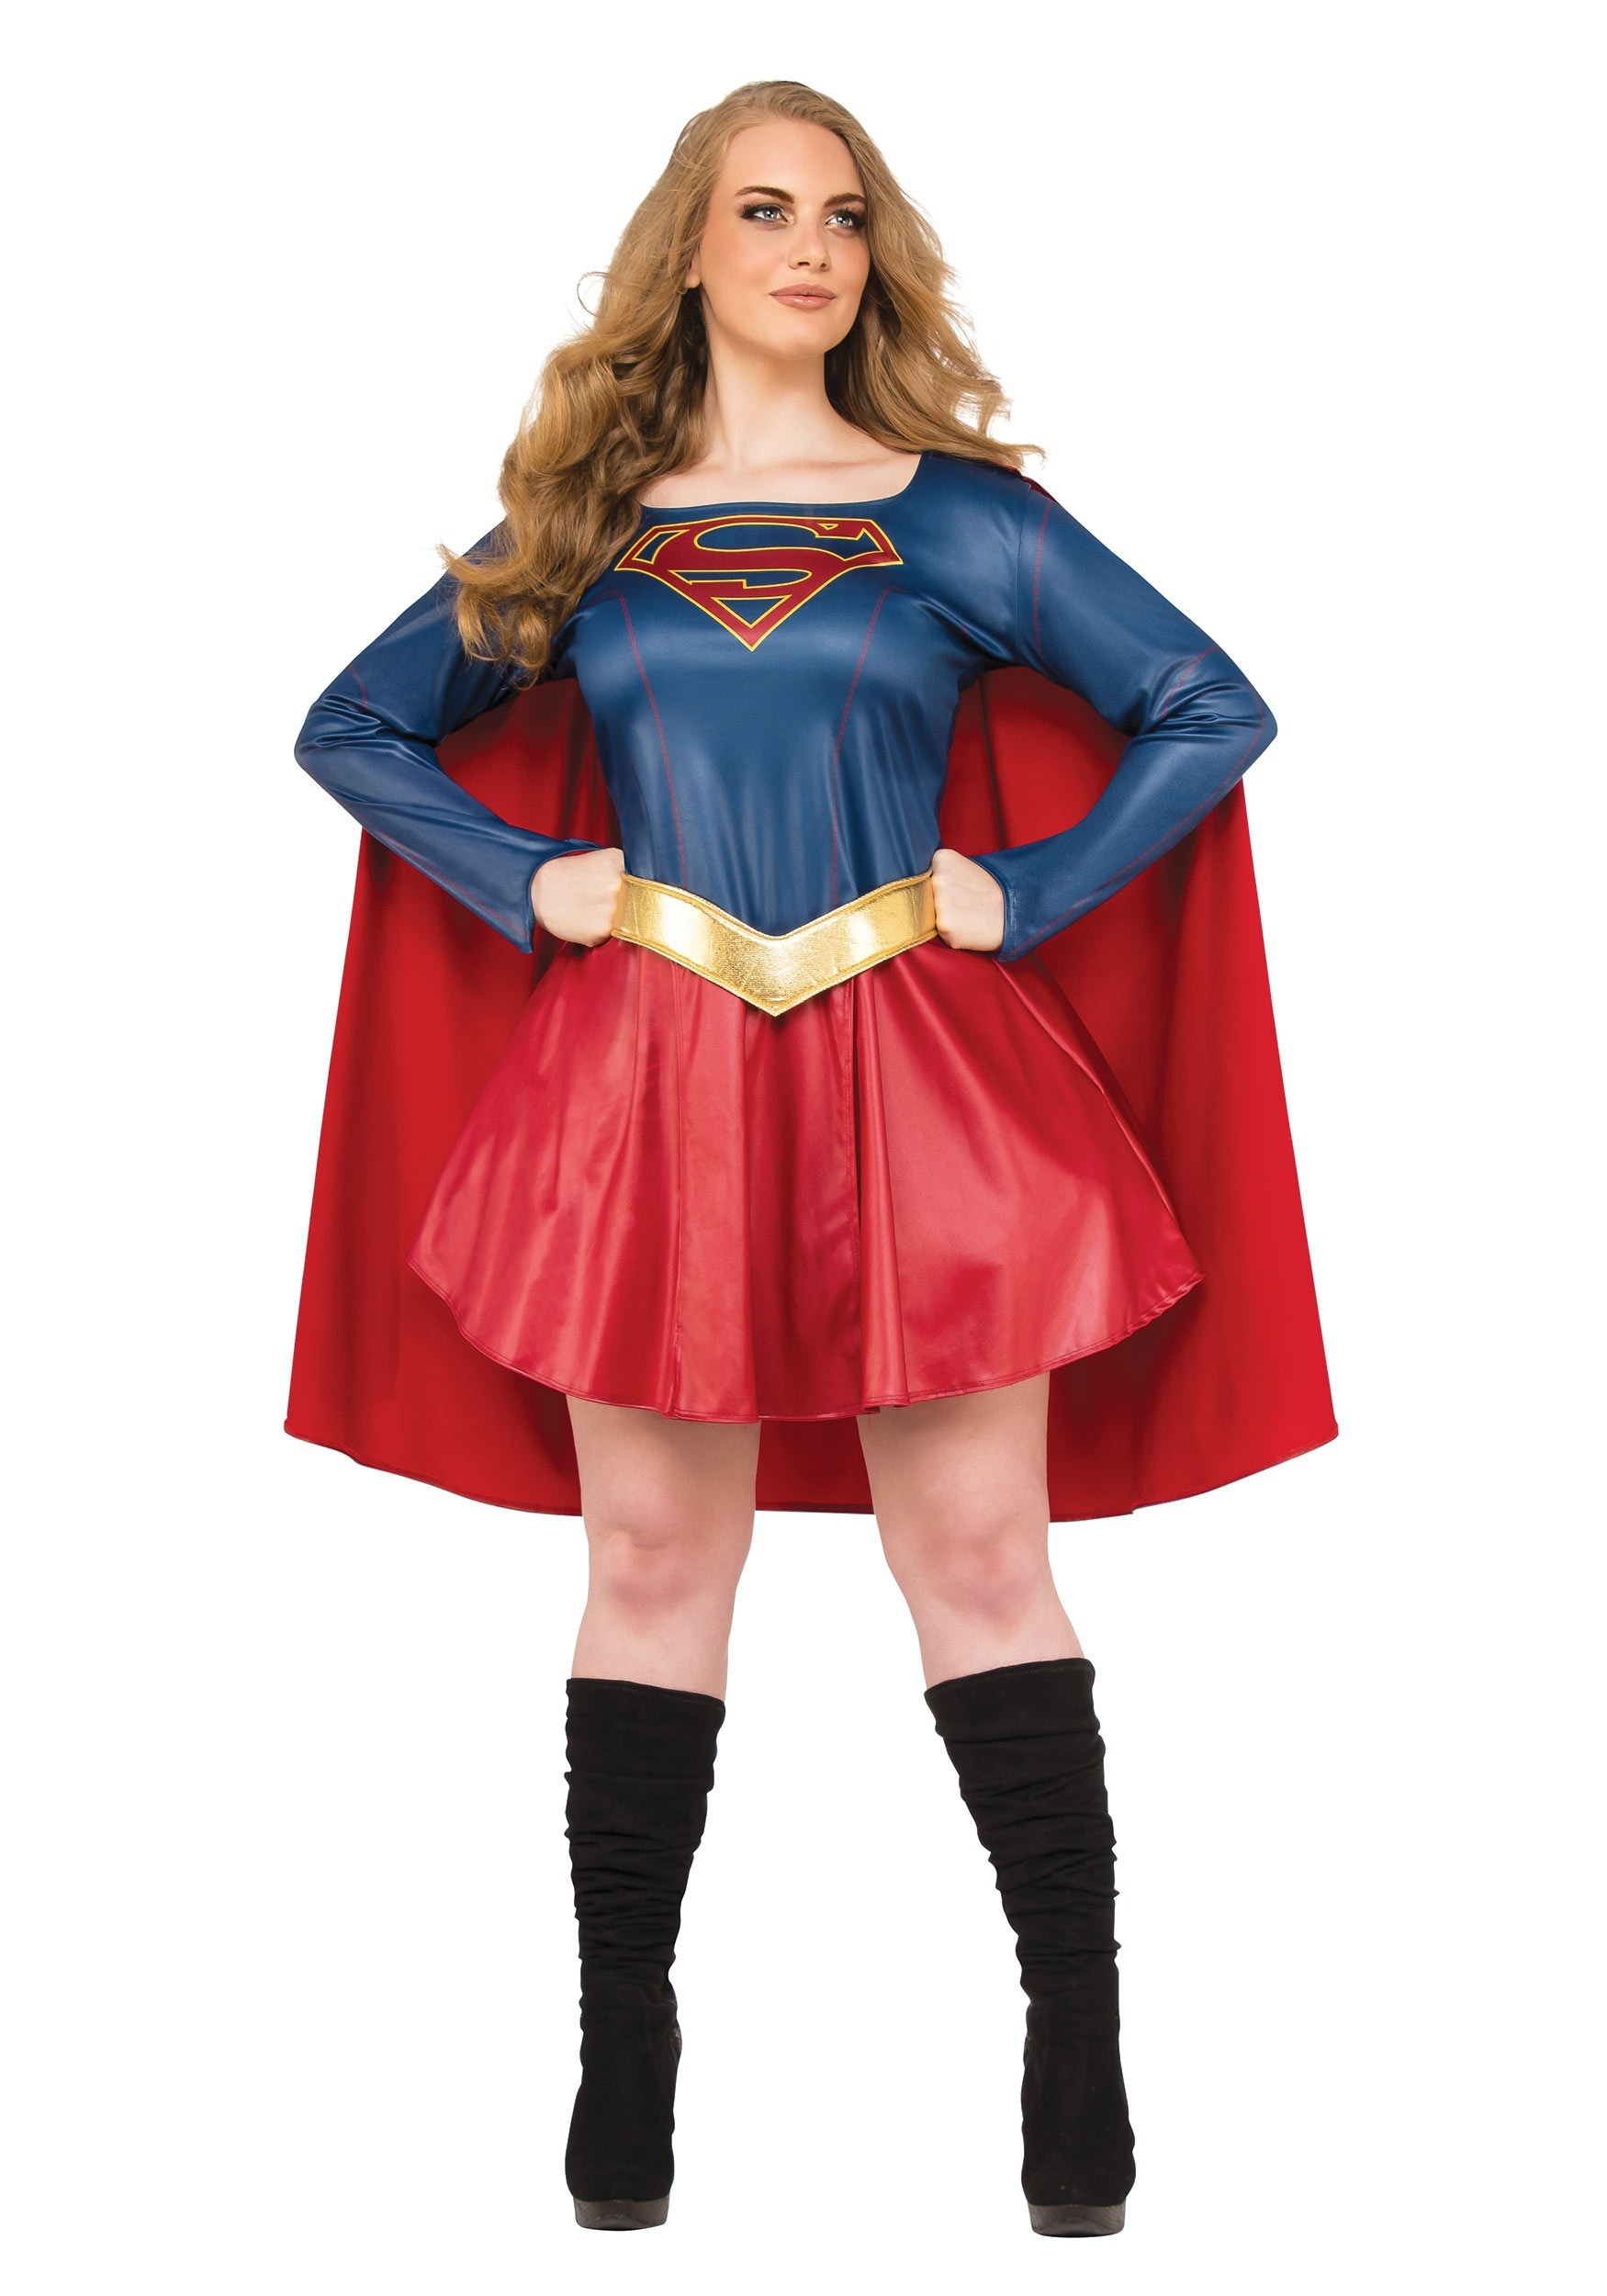 Womenu0027s Plus Size Supergirl TV Costume  sc 1 st  Halloween Costumes & Superwoman u0026 Supergirl Costumes - Adult Toddler Supergirl Costume